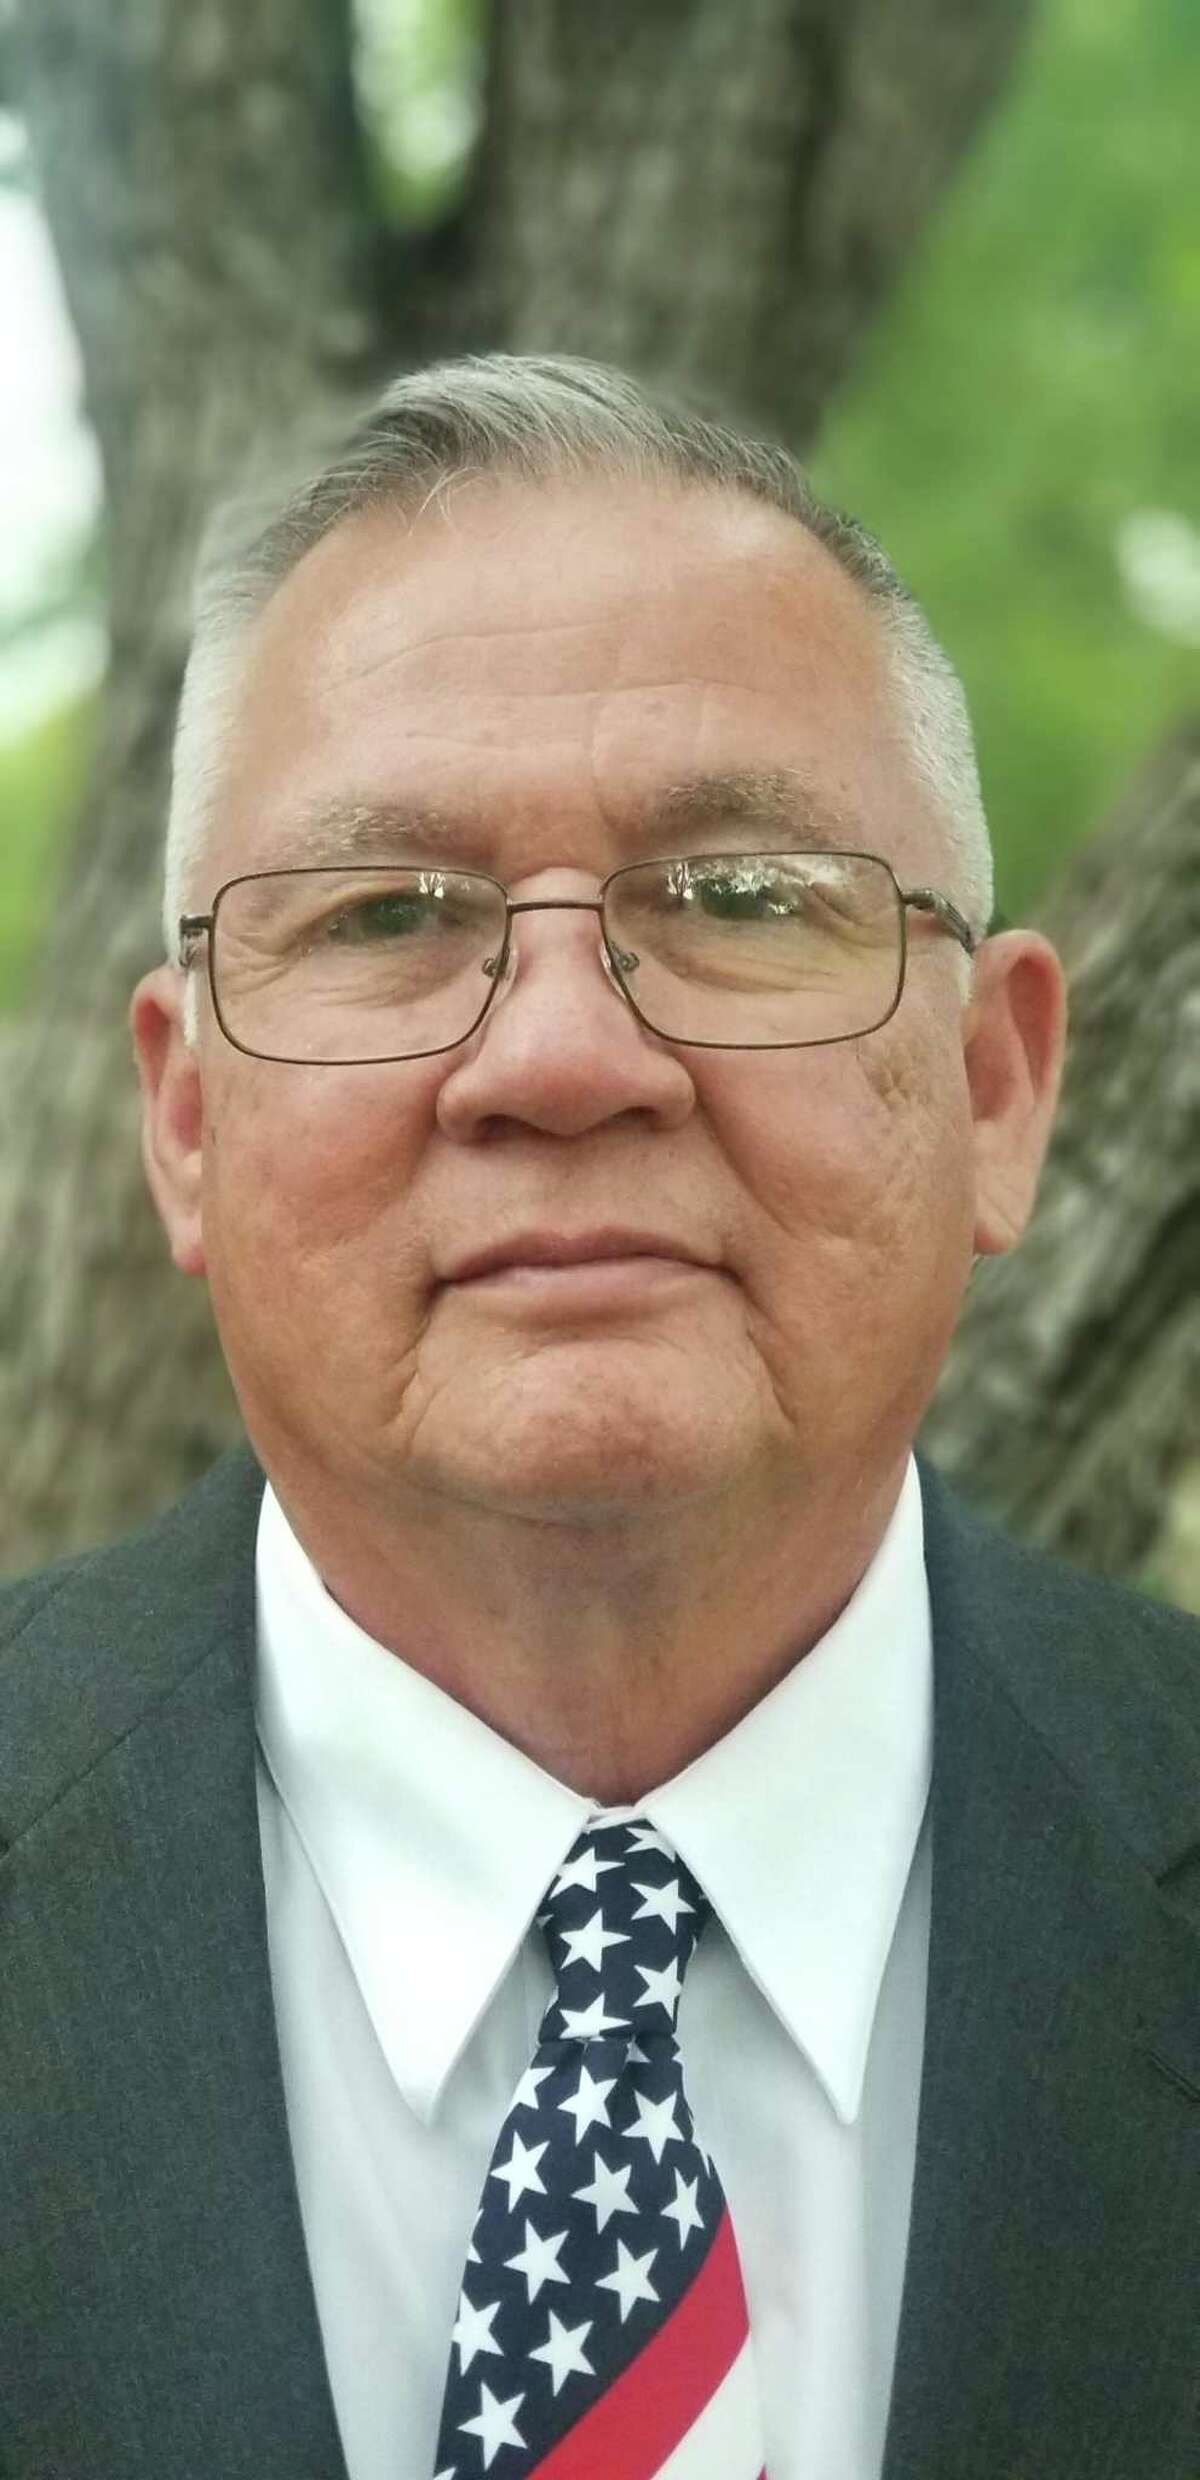 Gabriel Lara, 64, is running as a Republican for Bexar County commissioner in Precinct 1